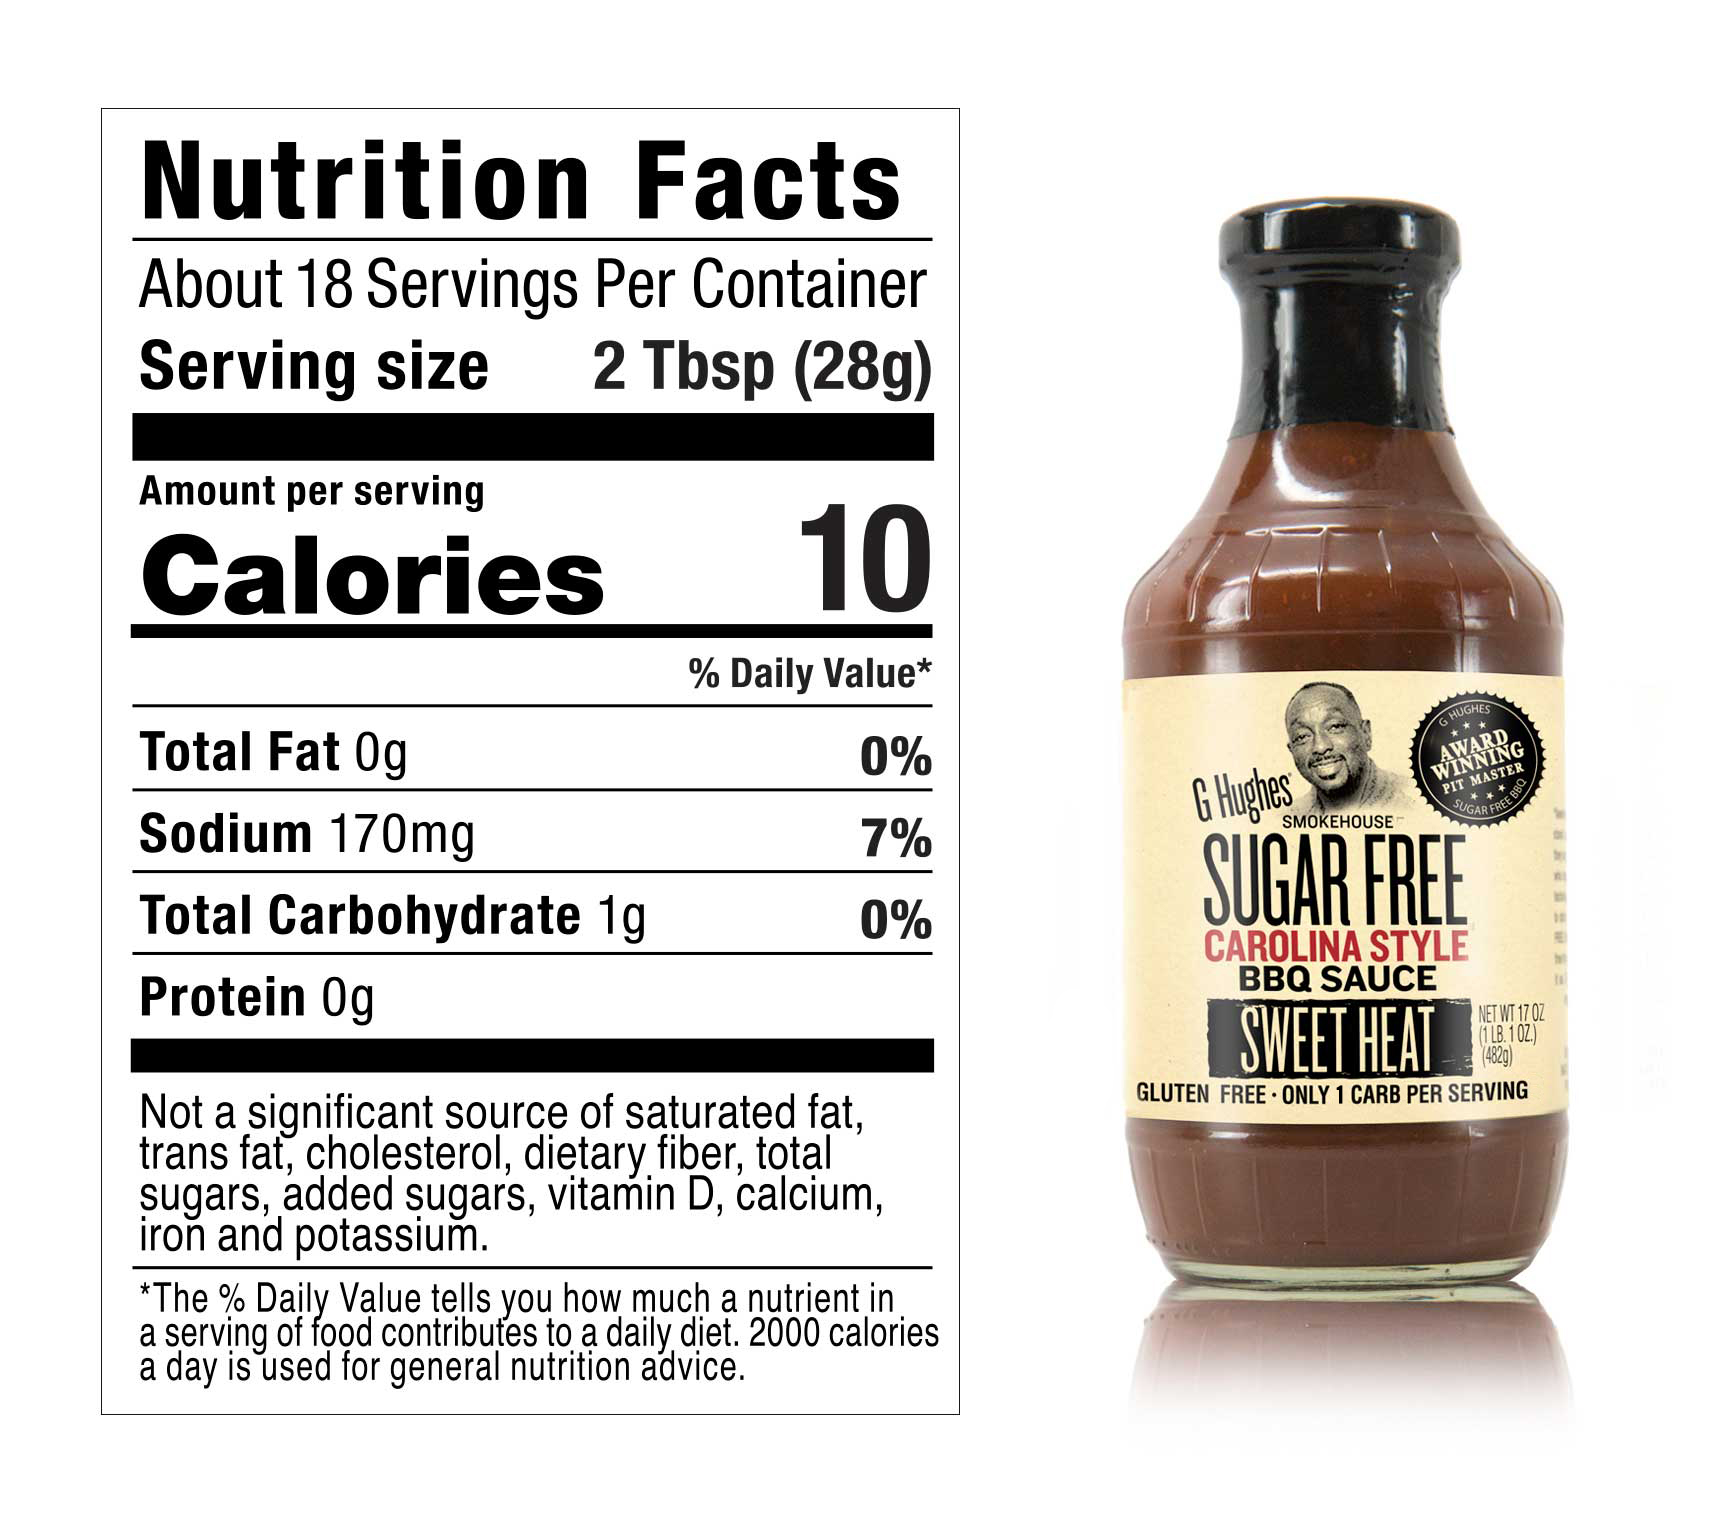 INGREDIENTS:  Vine-Ripened Crushed Tomatoes (Water, Crushed Tomatoes), White Vinegar, Cider Vinegar, Modified Cornstarch, Salt, Crushed Red Pepper, Spices, Caramel Color, Xanthan Gum, Sucralose.